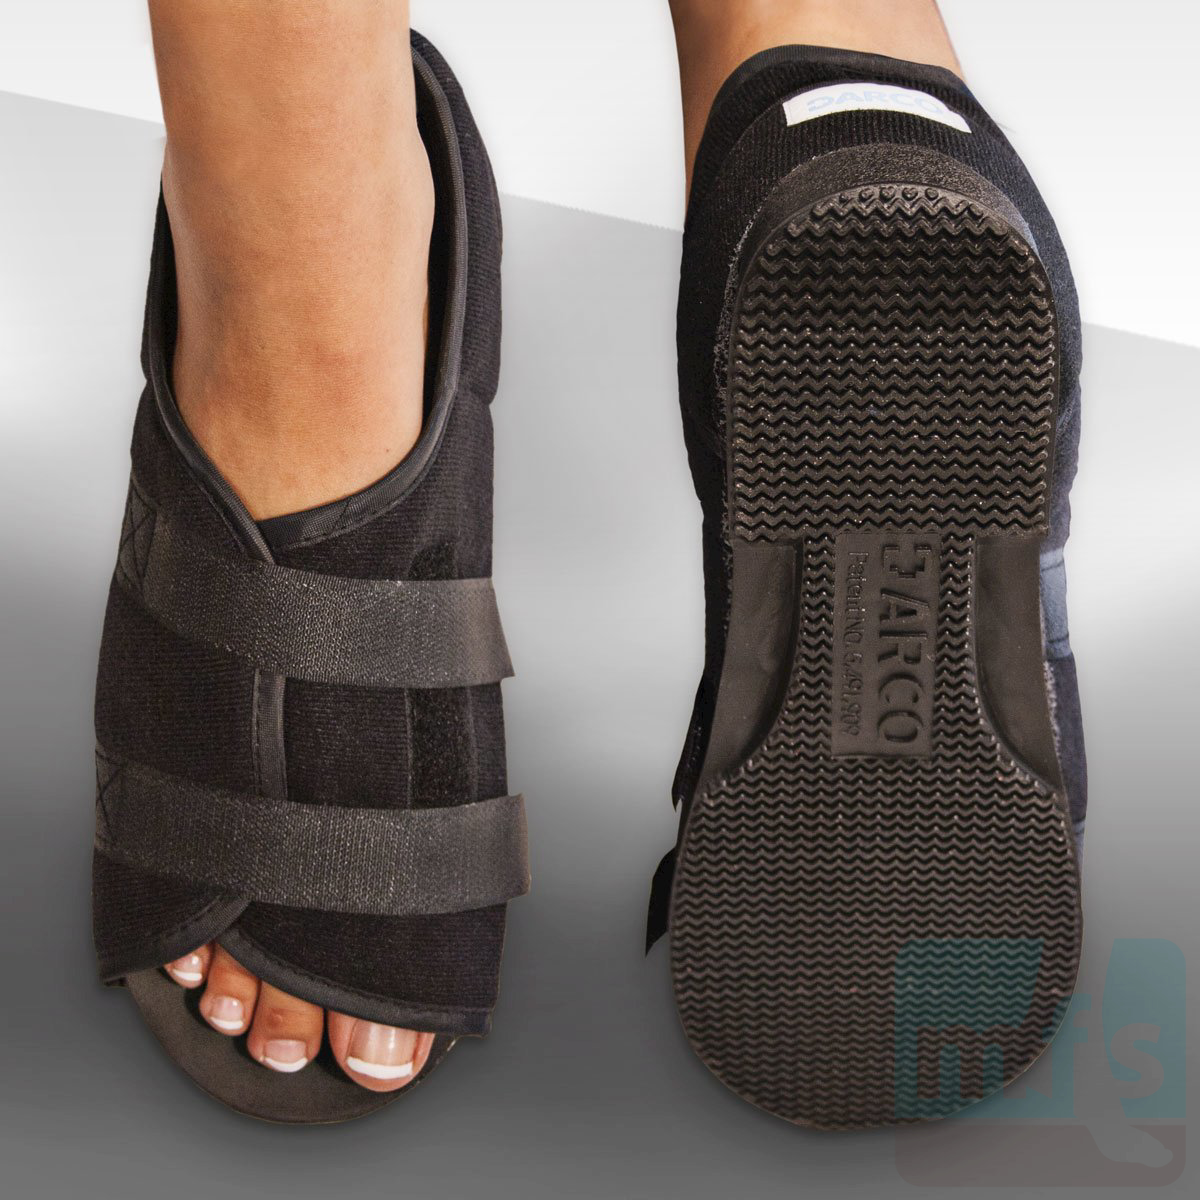 Open Shoes To Wear After Toe Surgery